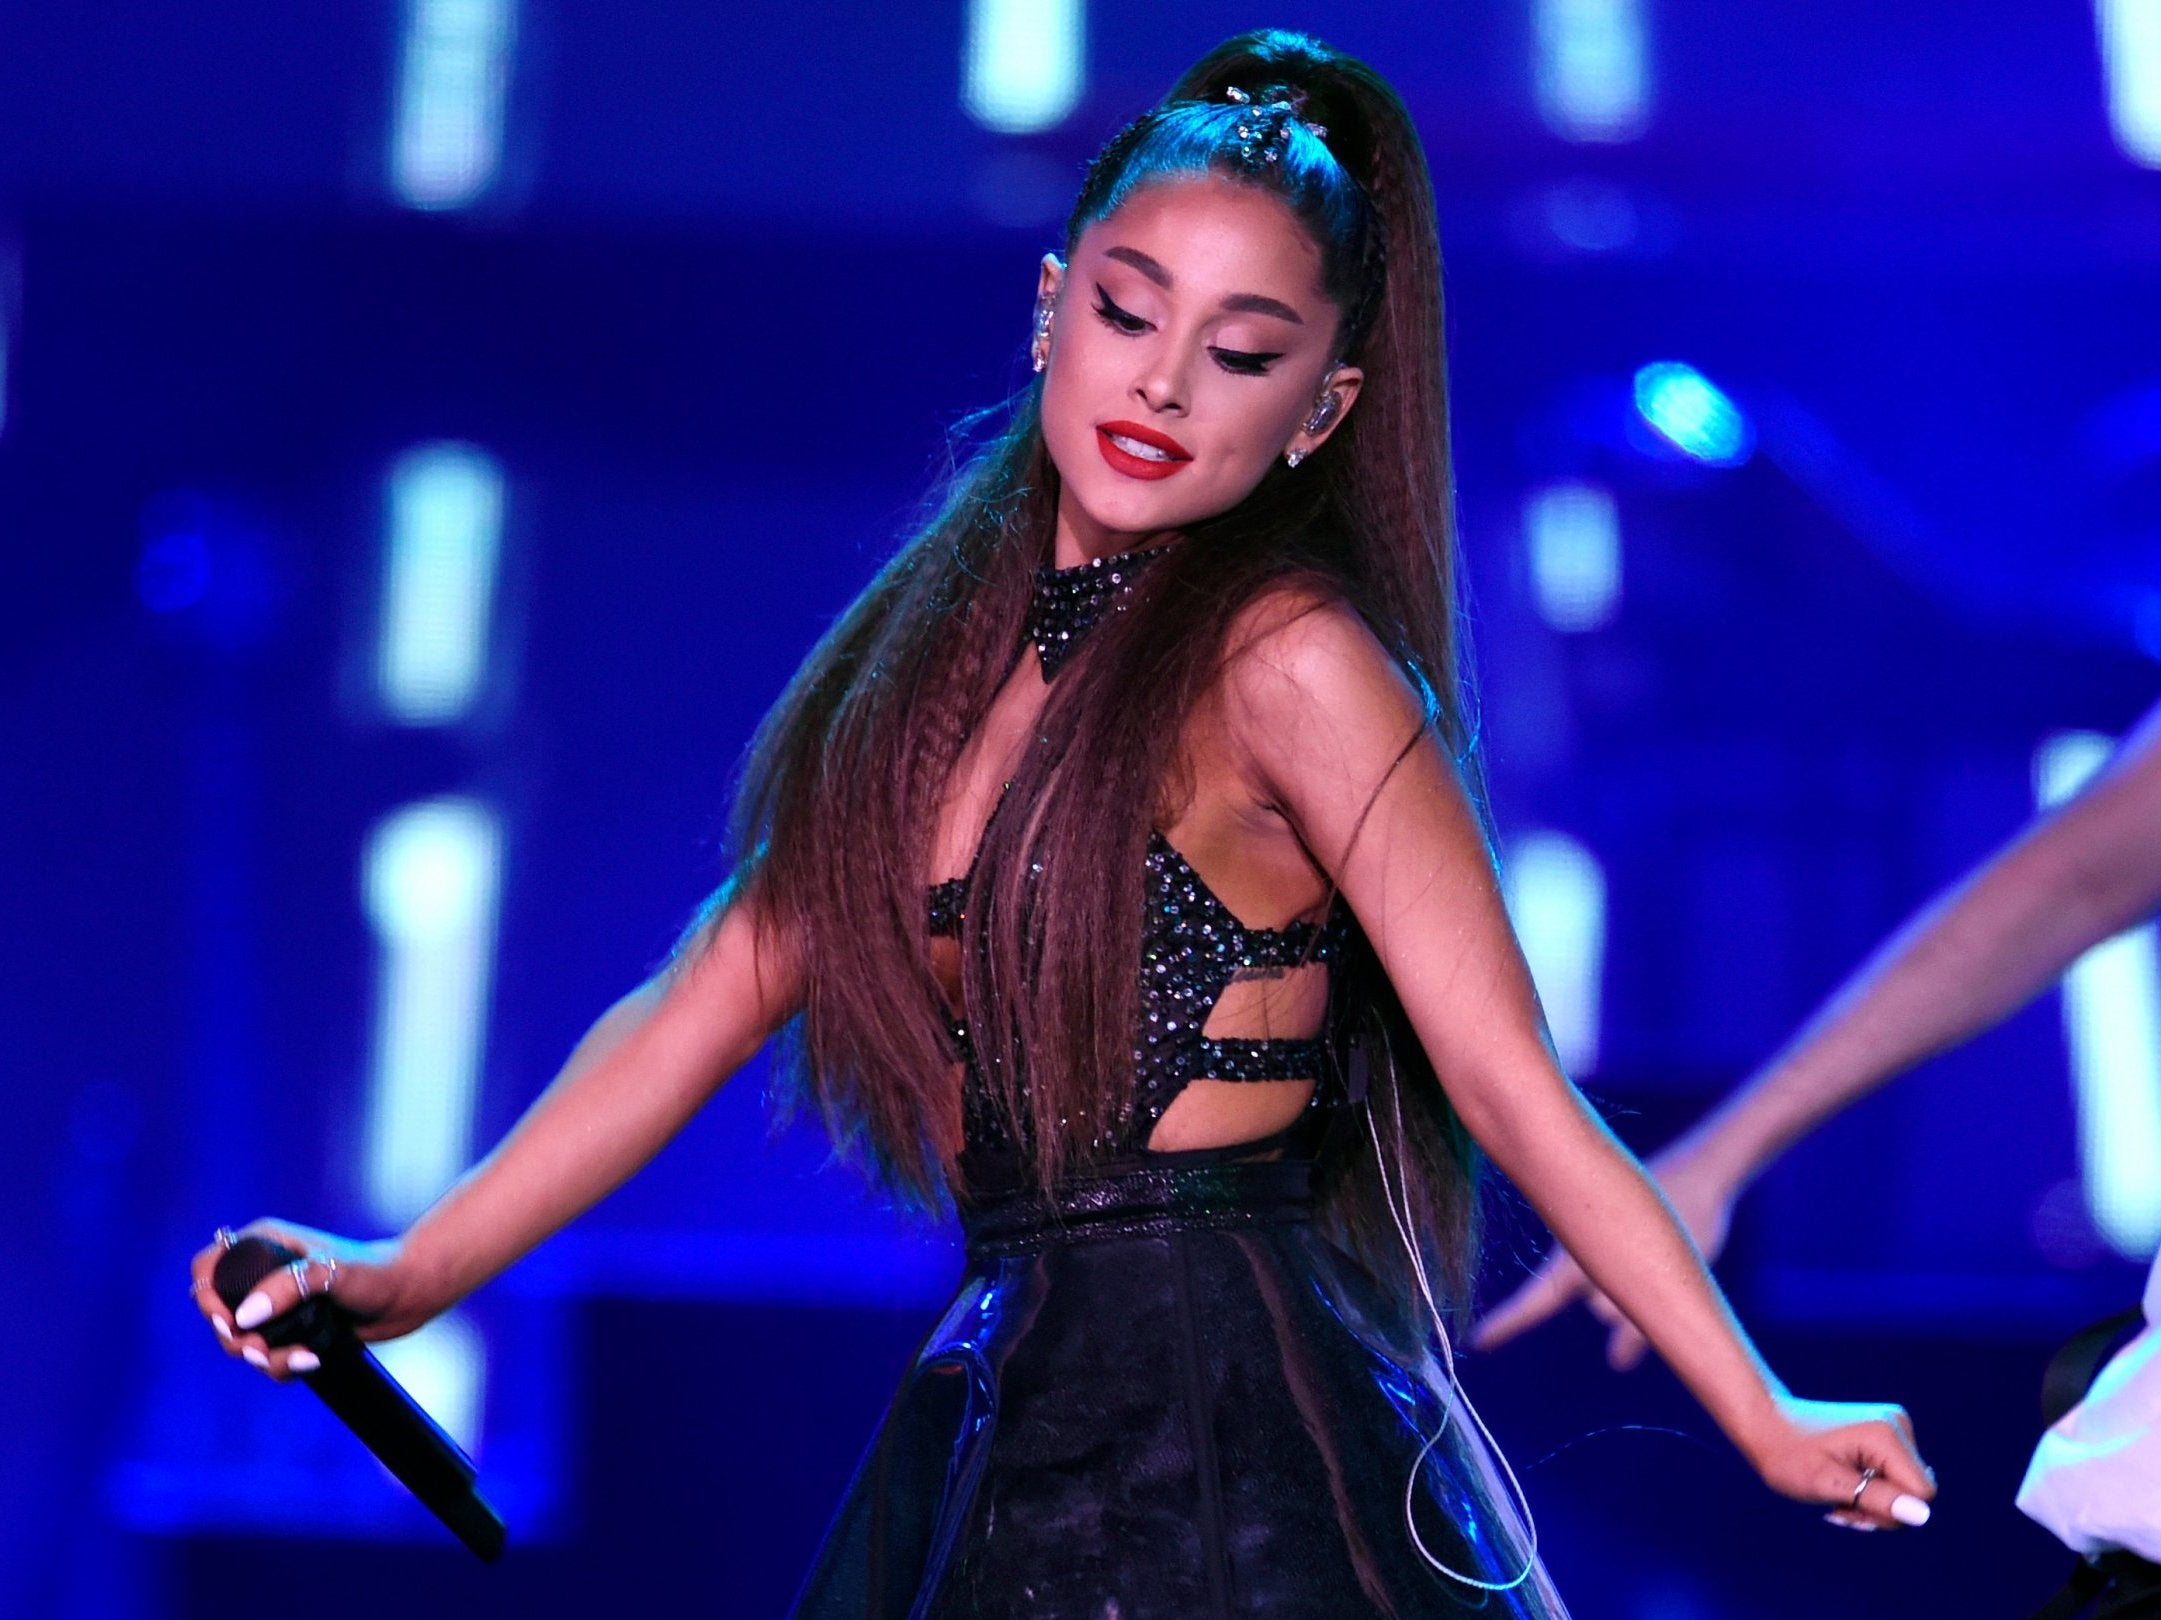 Ariana Grande And Victoria Monet Release New Song Monopoly After Speculation Over Bisexual Lyrics The Independent The Independent Charlie's angels 2019 soundtrack lyrics. ariana grande and victoria monet